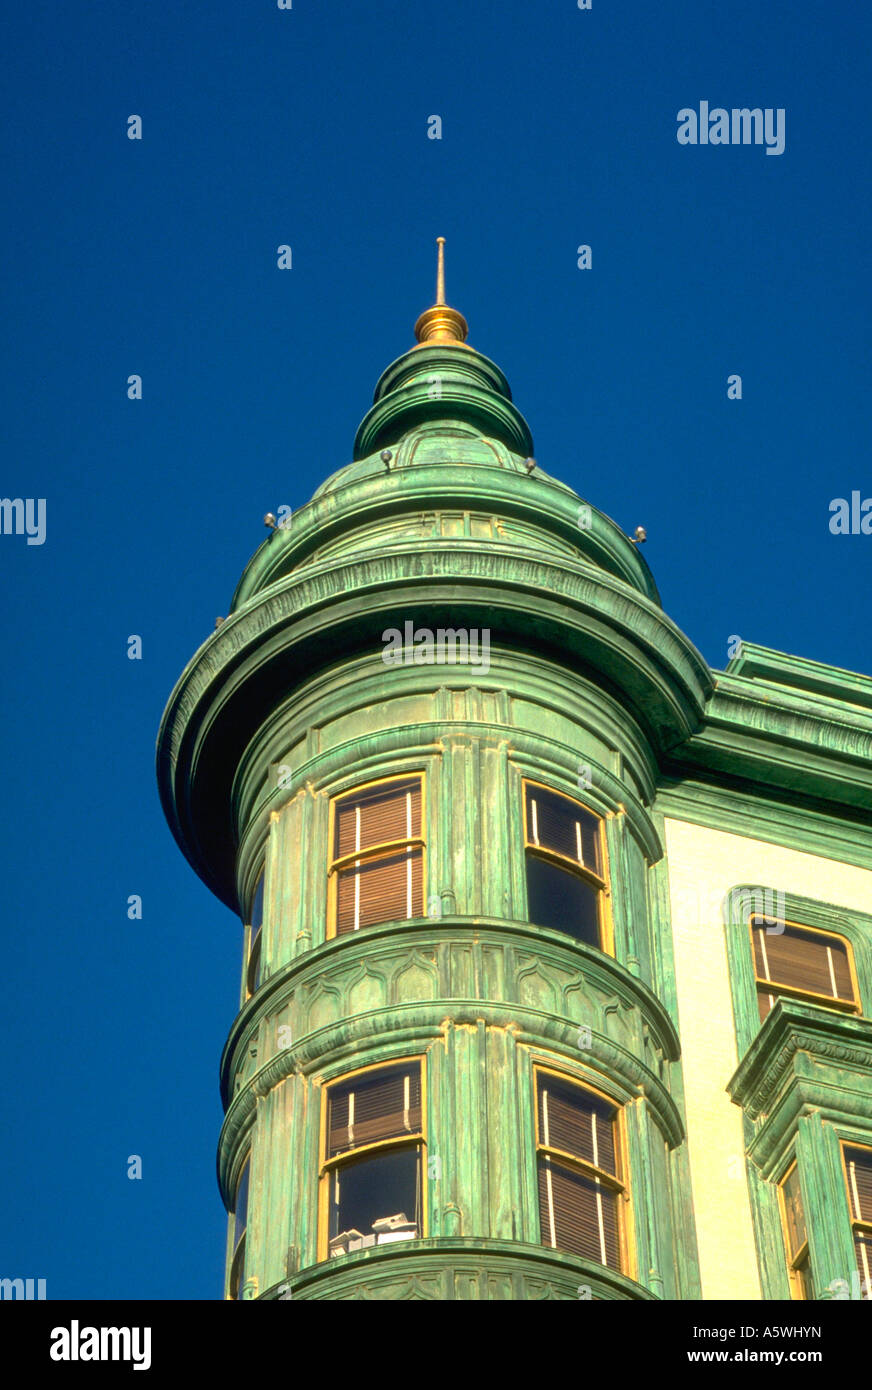 Painet hk2491 north beach turid displays finer aspects san francisco arhitecture point green vertical steep detail - Stock Image